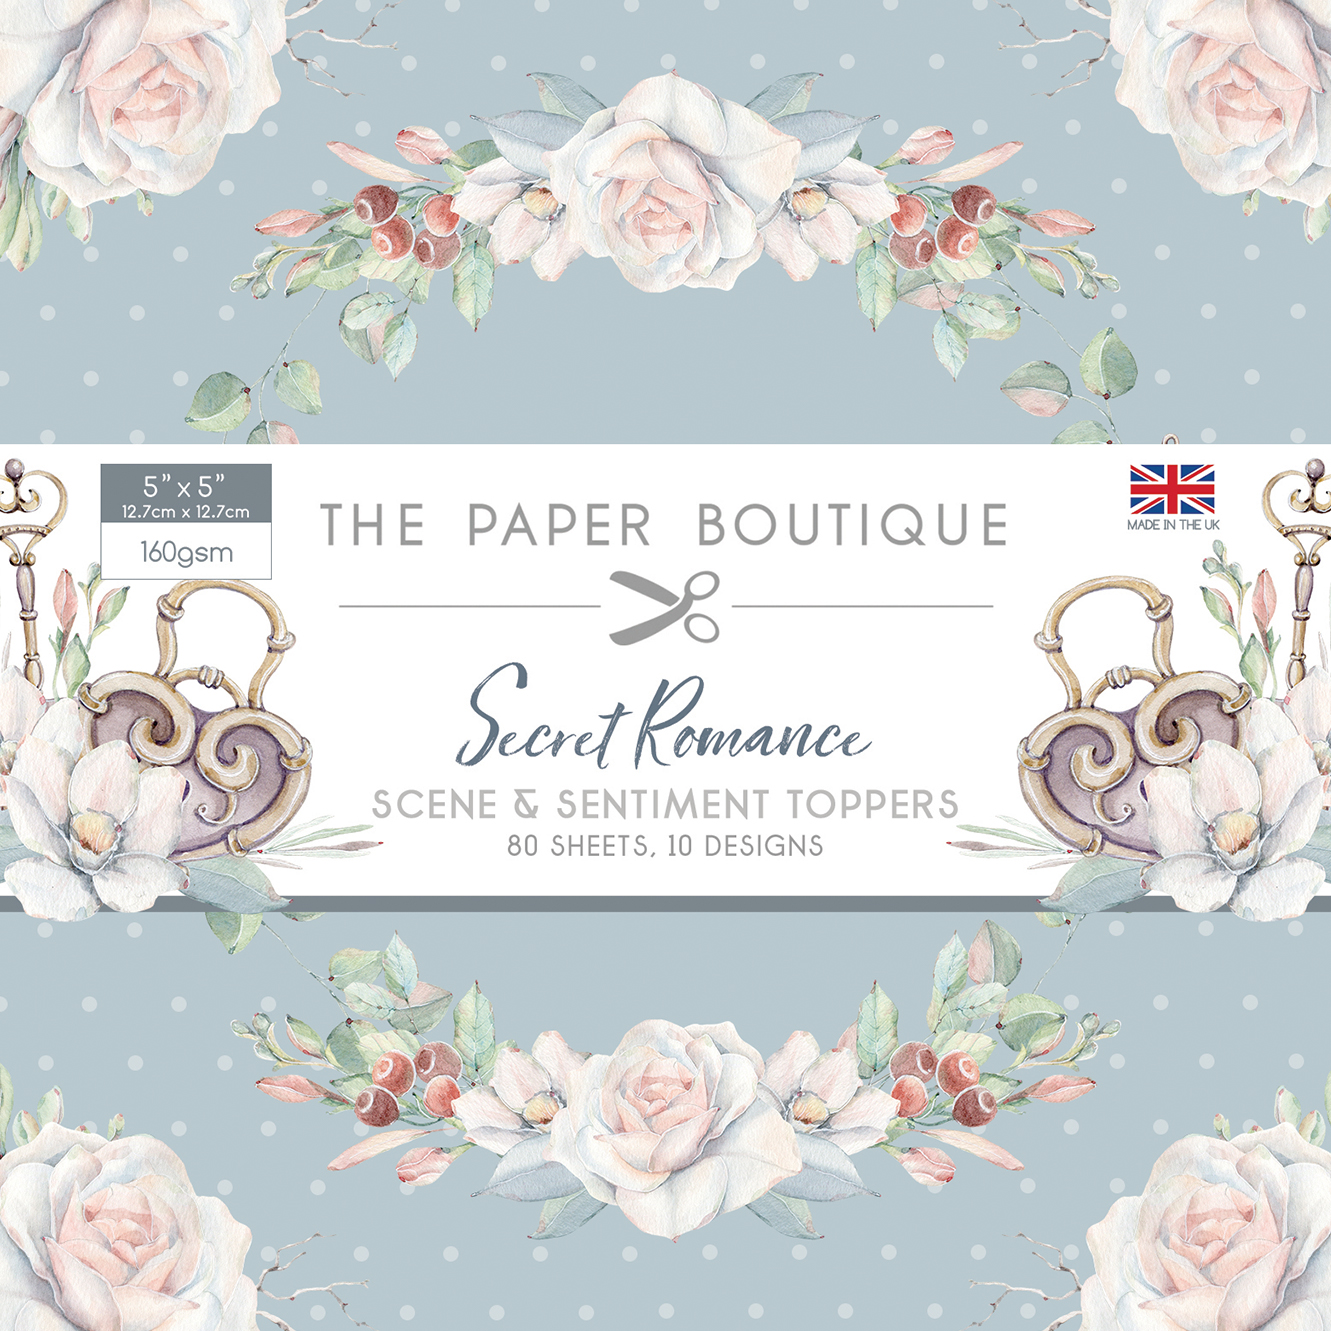 The Paper Boutique Secret Romance 5″ x 5″ Scene & Sentiment Topper Pad